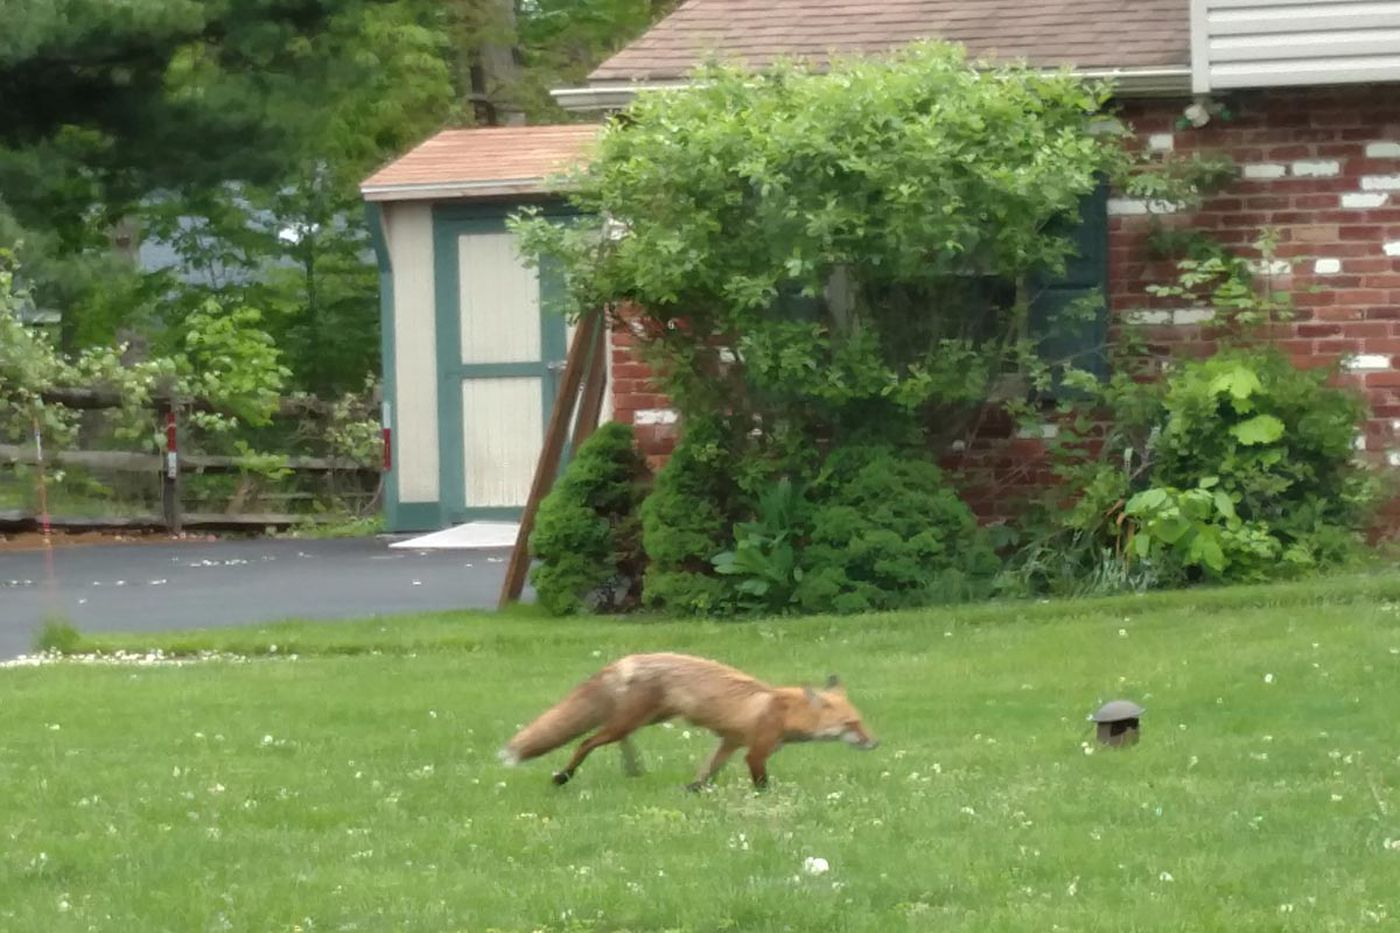 Police: Red foxes causing trouble in Bucks neighborhoods